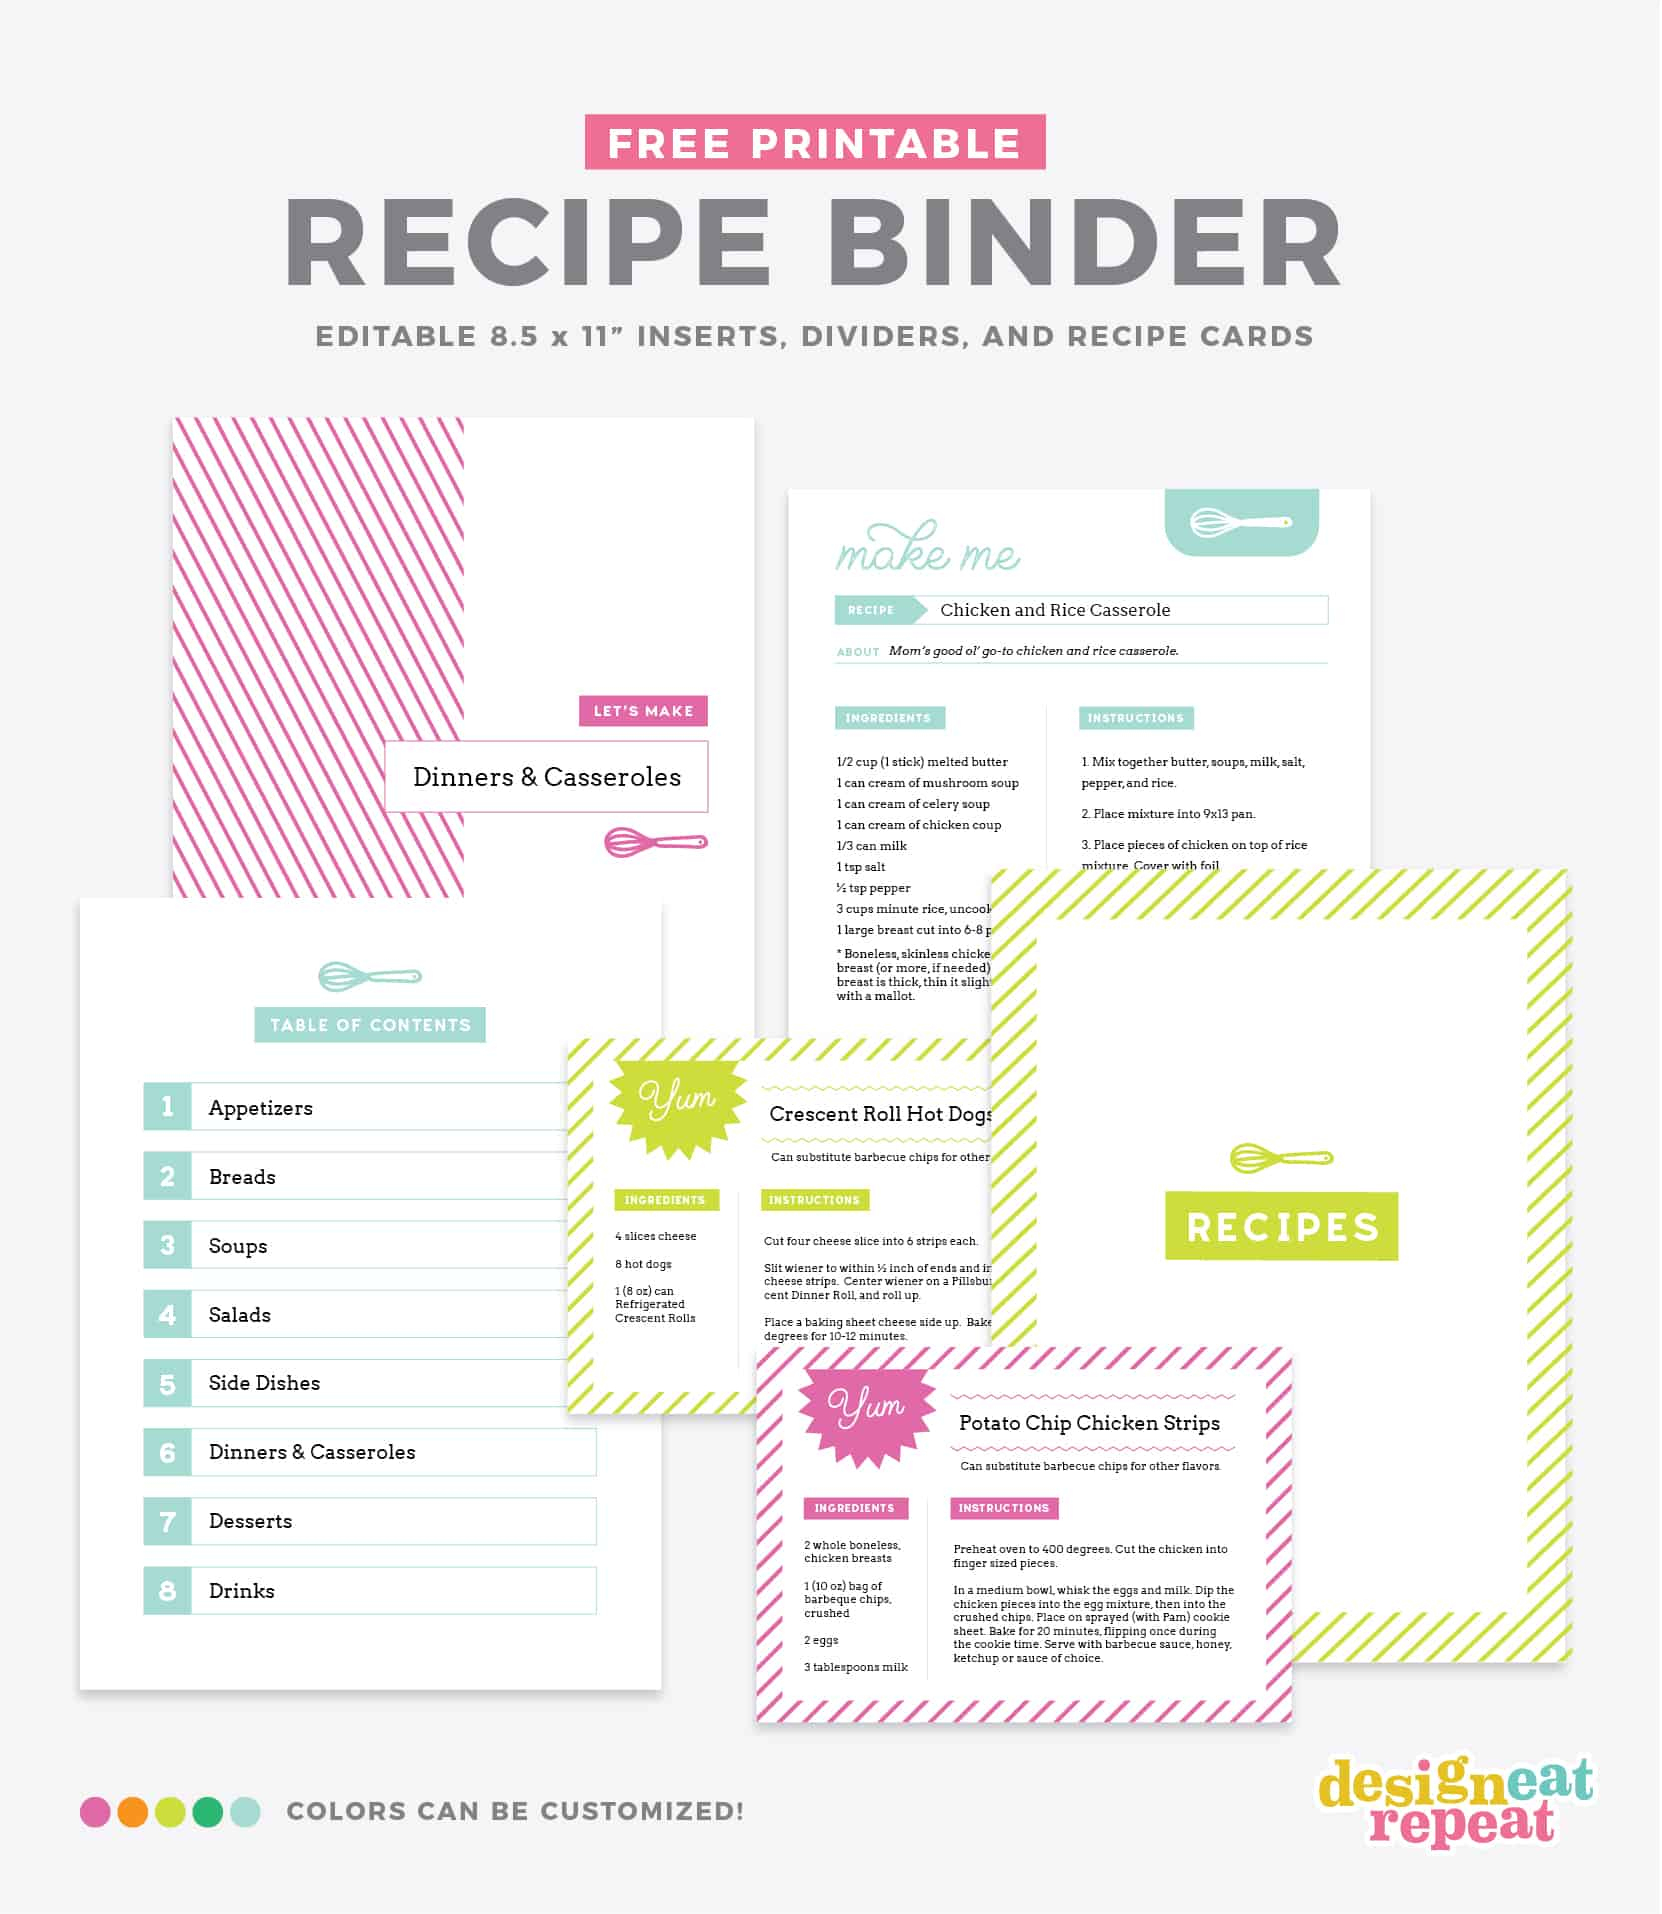 Diy Recipe Book (With Free Printable Recipe Binder Kit!) - Free Printable Recipe Binder Templates